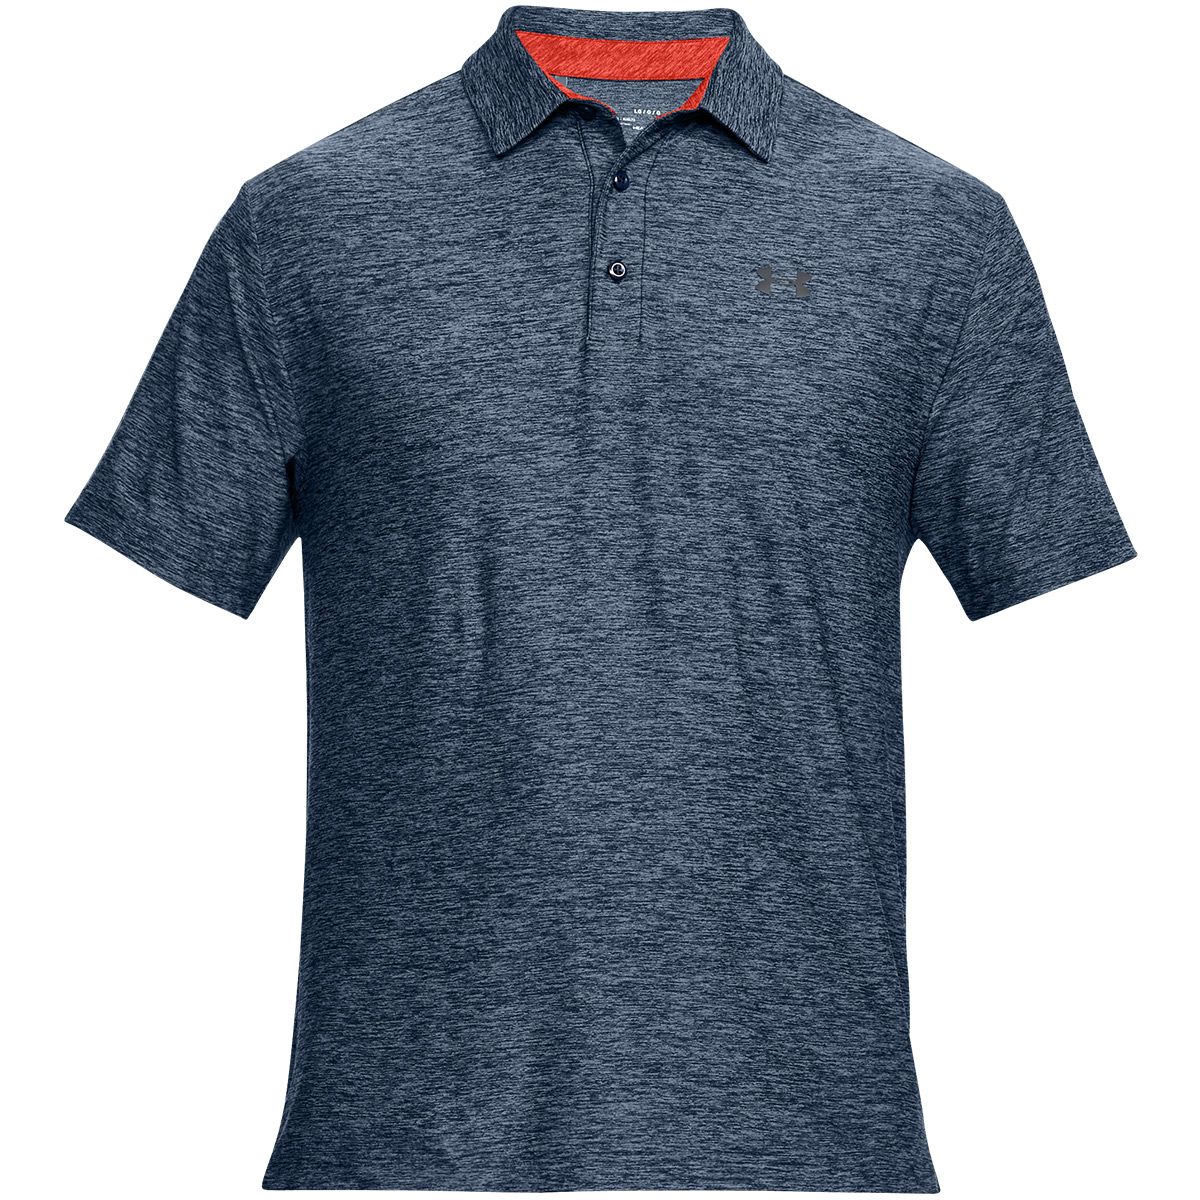 Under-Armour-Mens-UA-Playoff-Performance-Golf-Polo-Shirt-42-OFF-RRP thumbnail 26